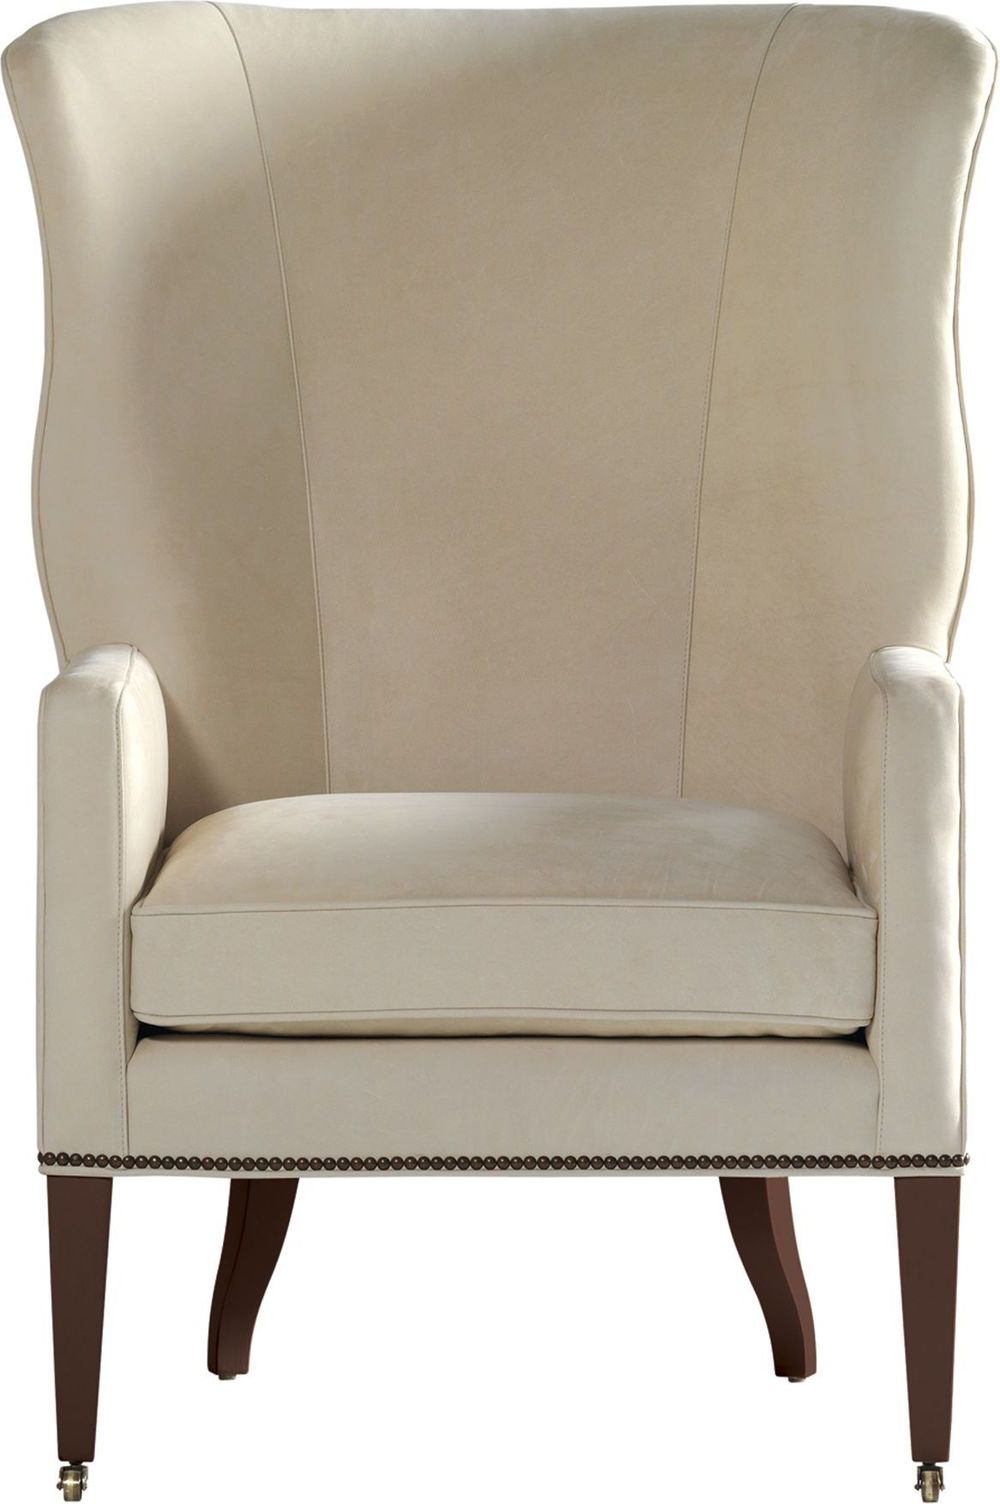 Baker Furniture - Wing Chair